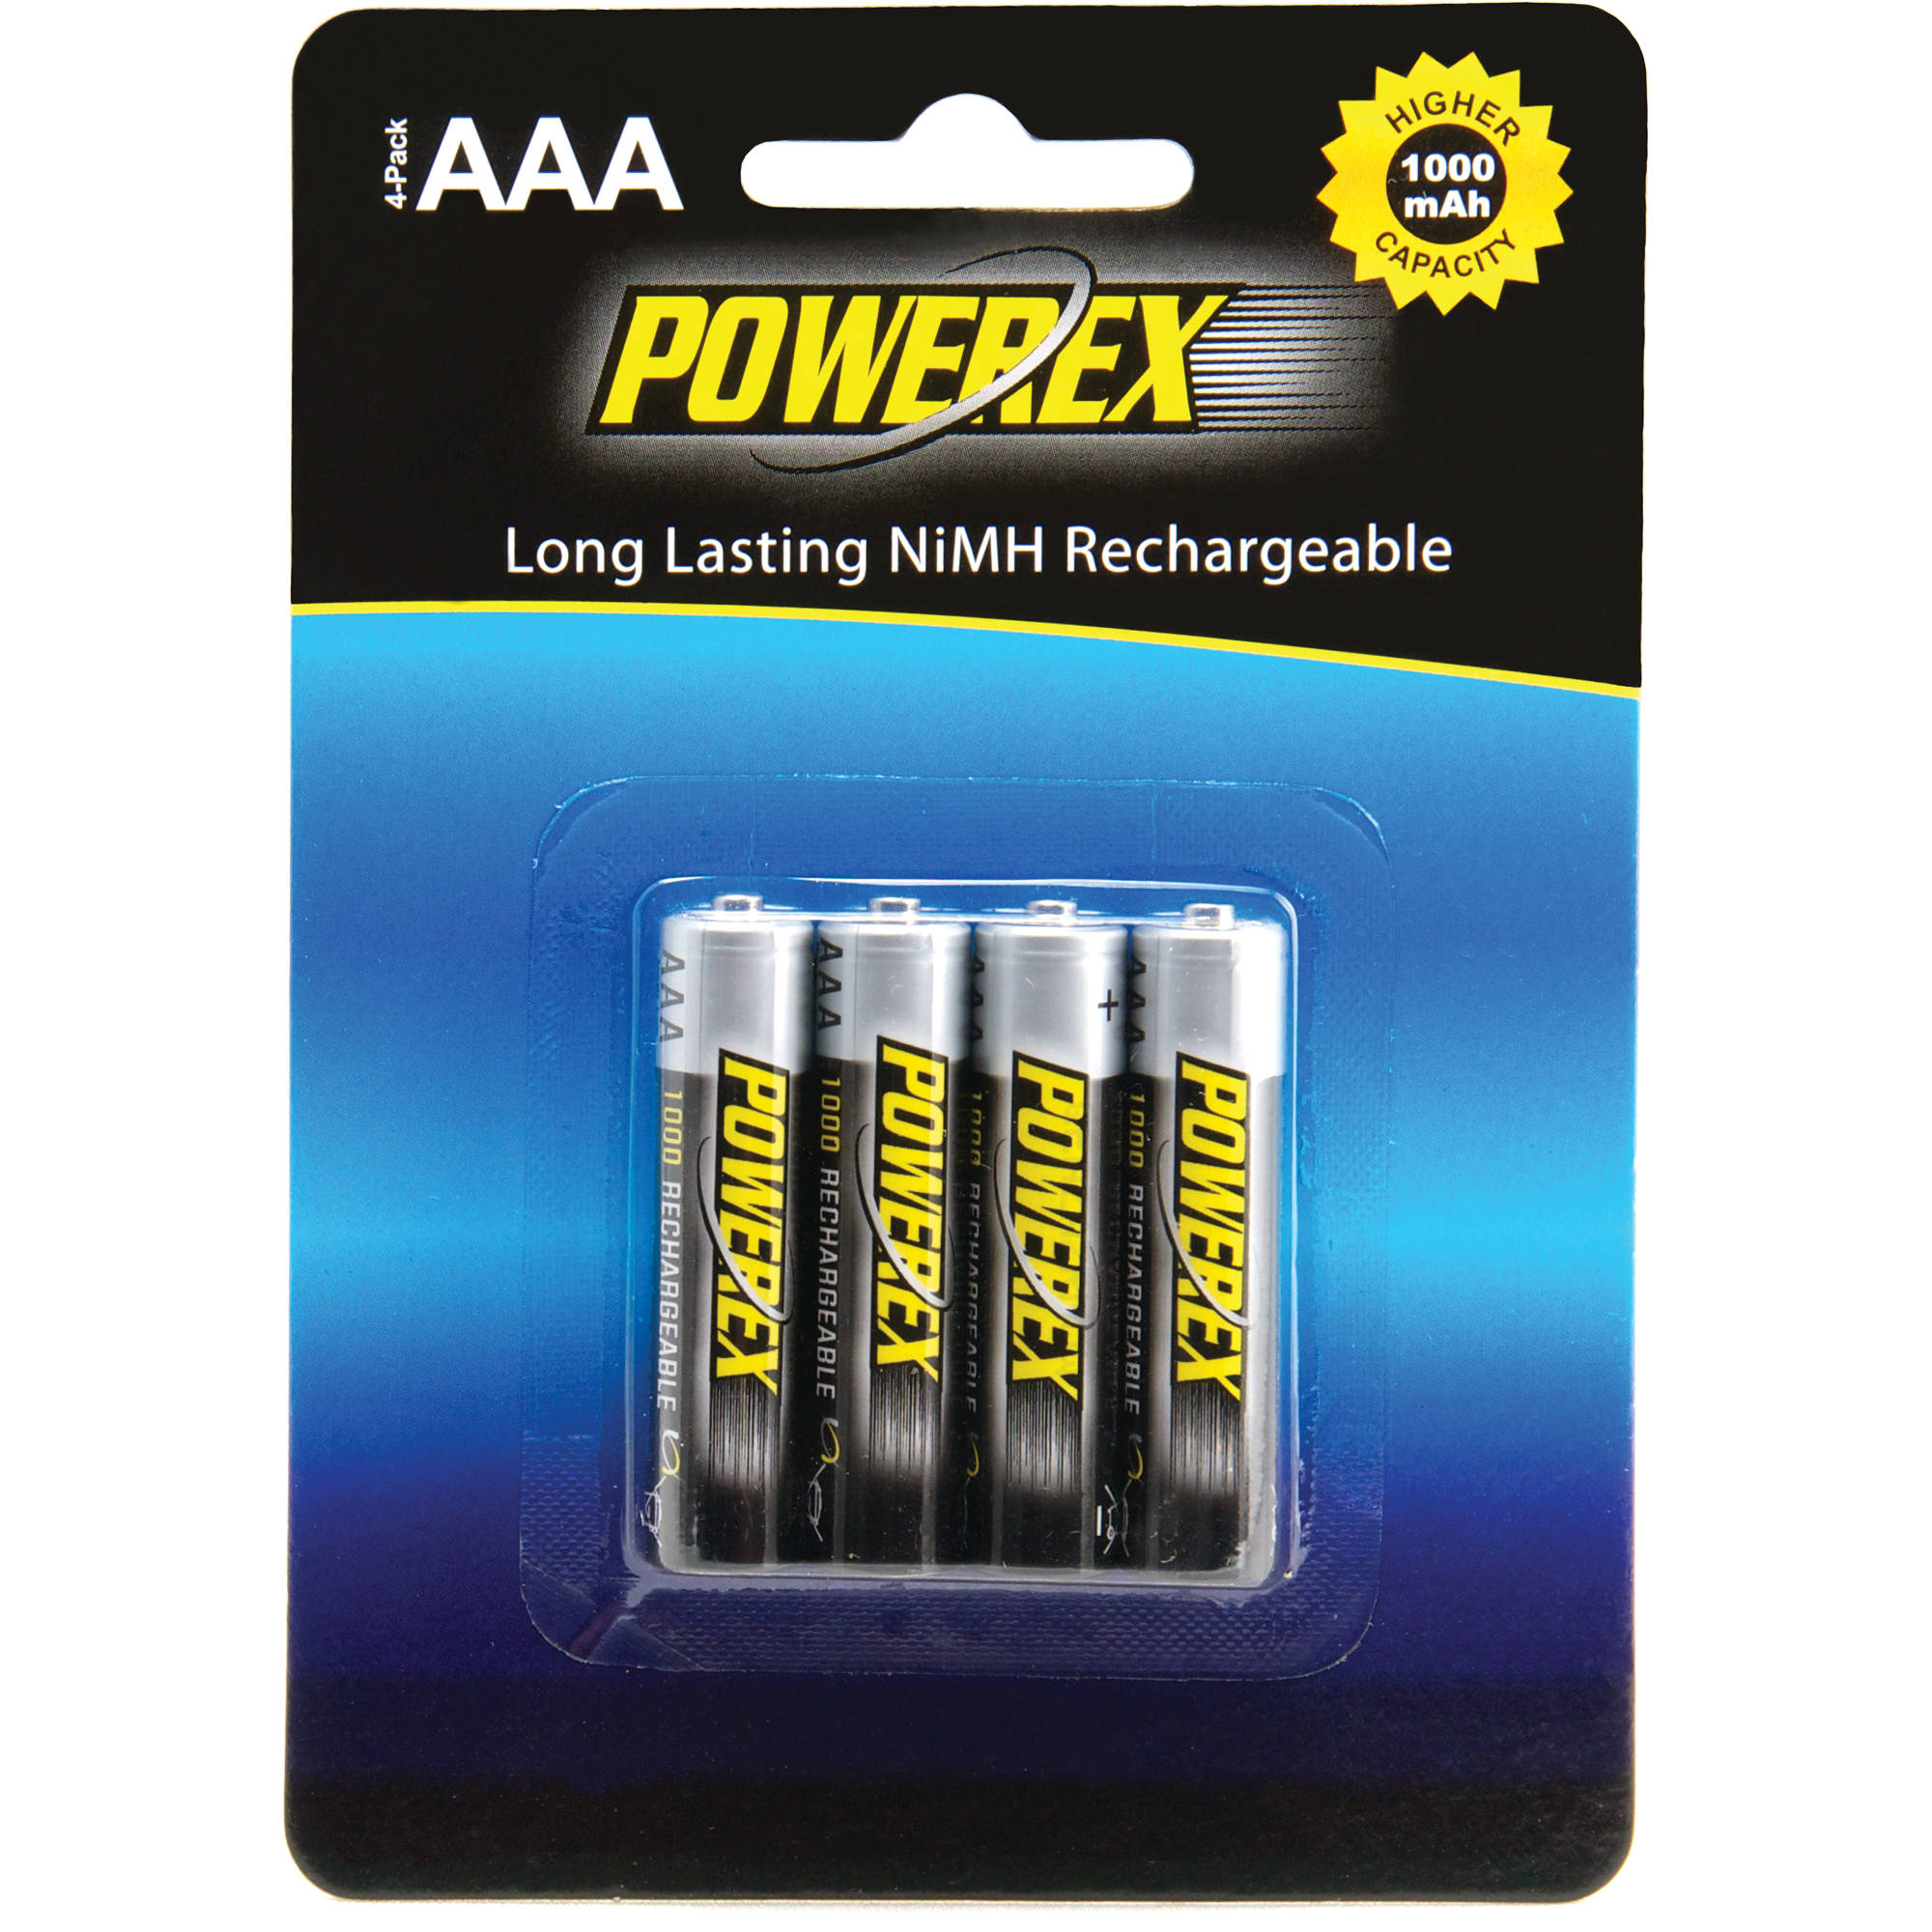 powerex rechargeable aaa nimh batteries 1 2v 1000mah mhraaa4. Black Bedroom Furniture Sets. Home Design Ideas